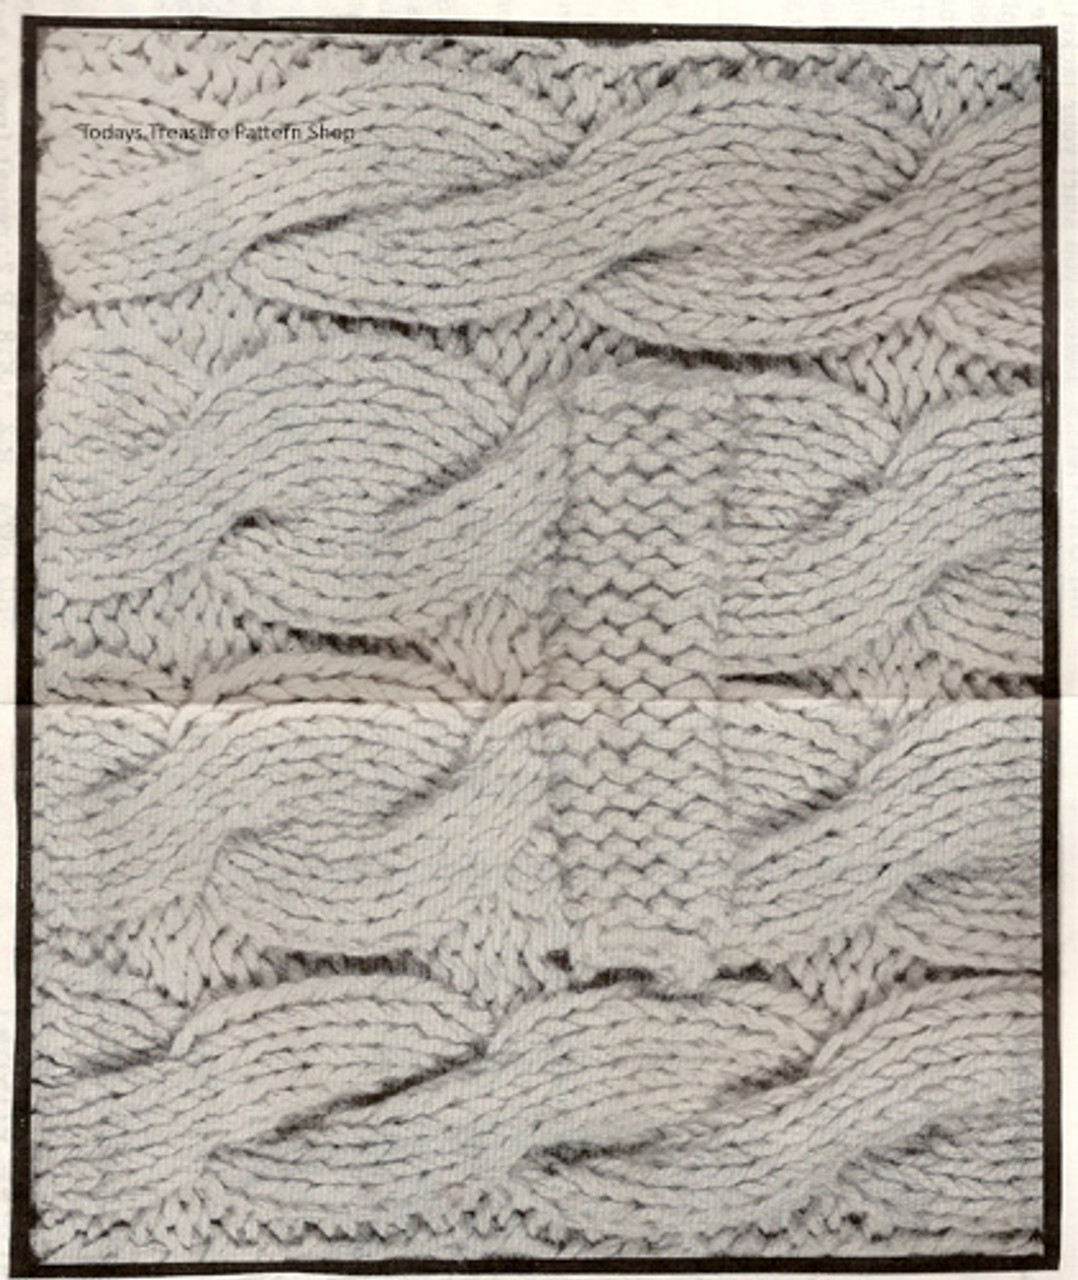 Cable Pattern Stitch for Knitted Jacket